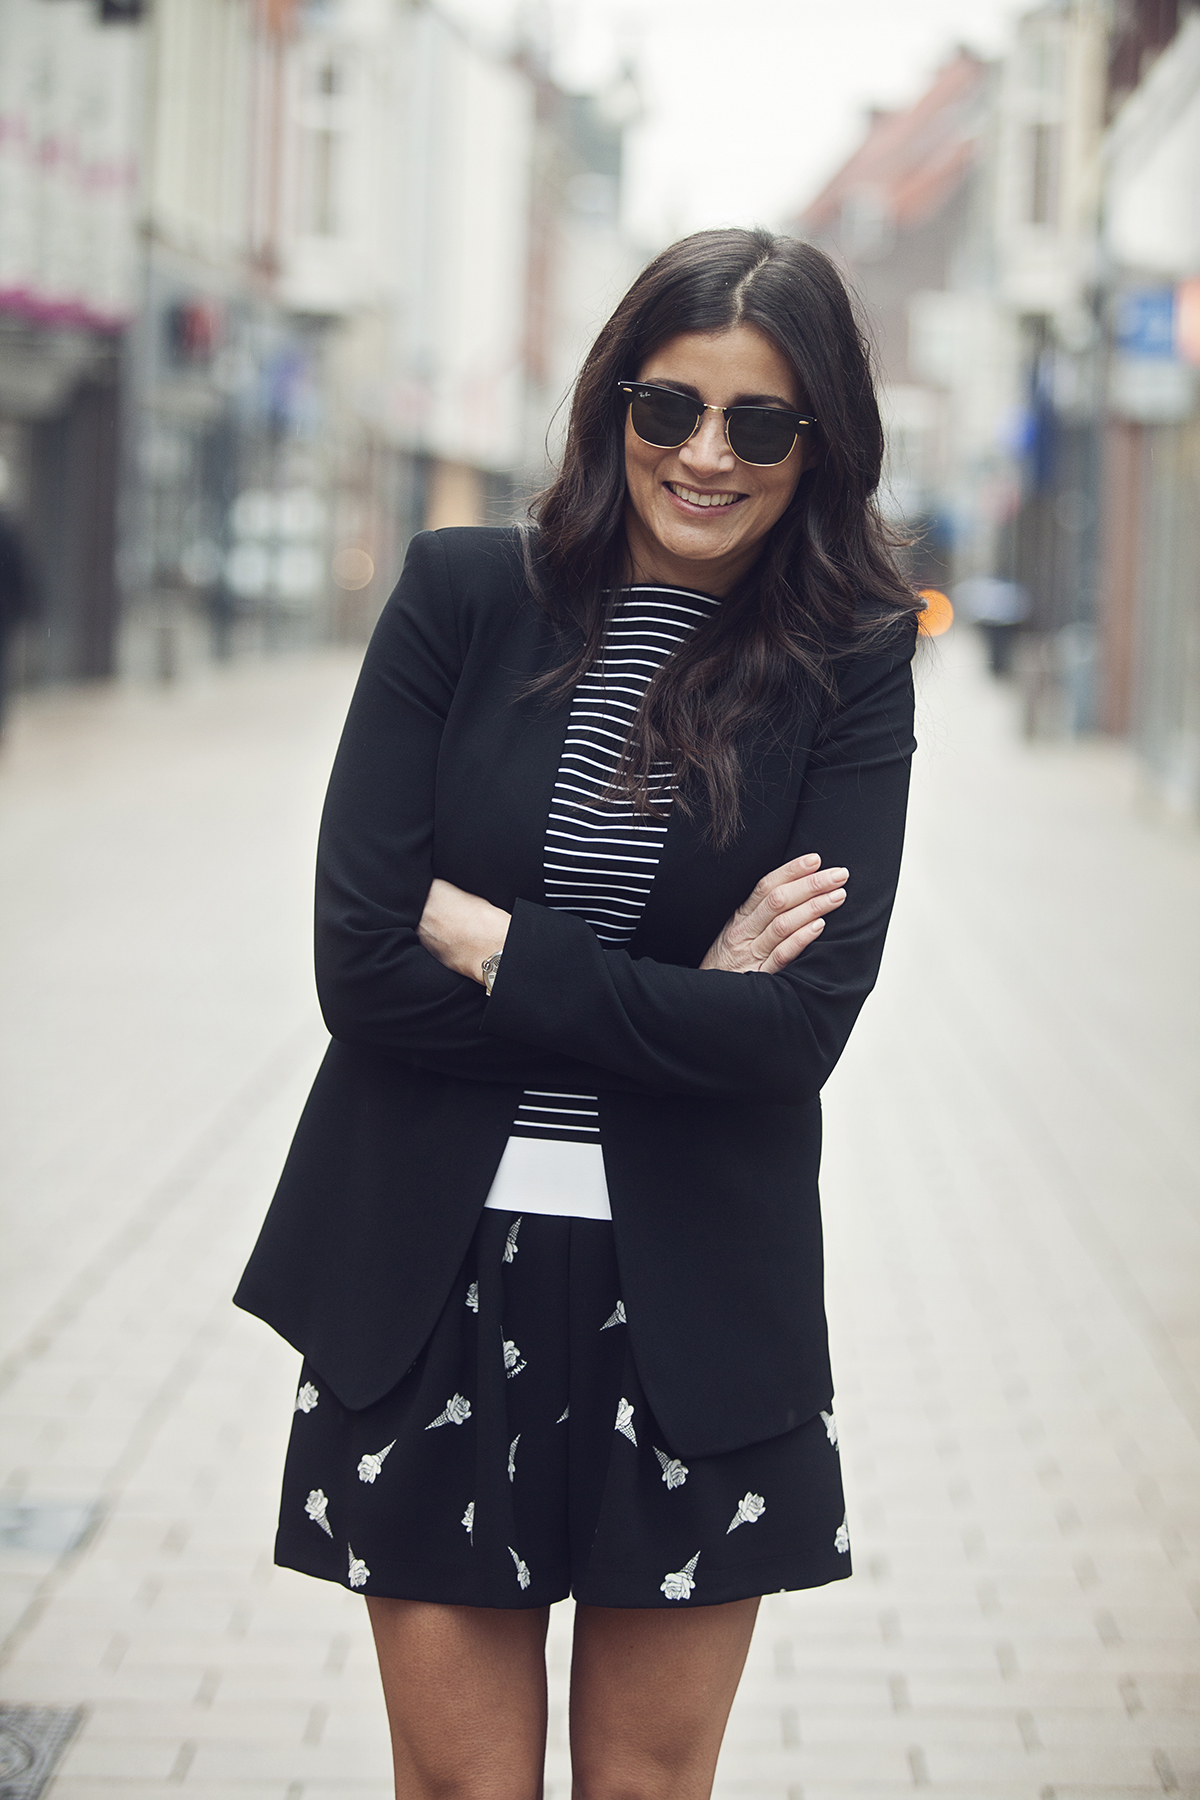 streetstyle look streetphotography stripes and prints Patrizia pepe Pinko Dsquared BlogForShops for jimmy's Tilburg